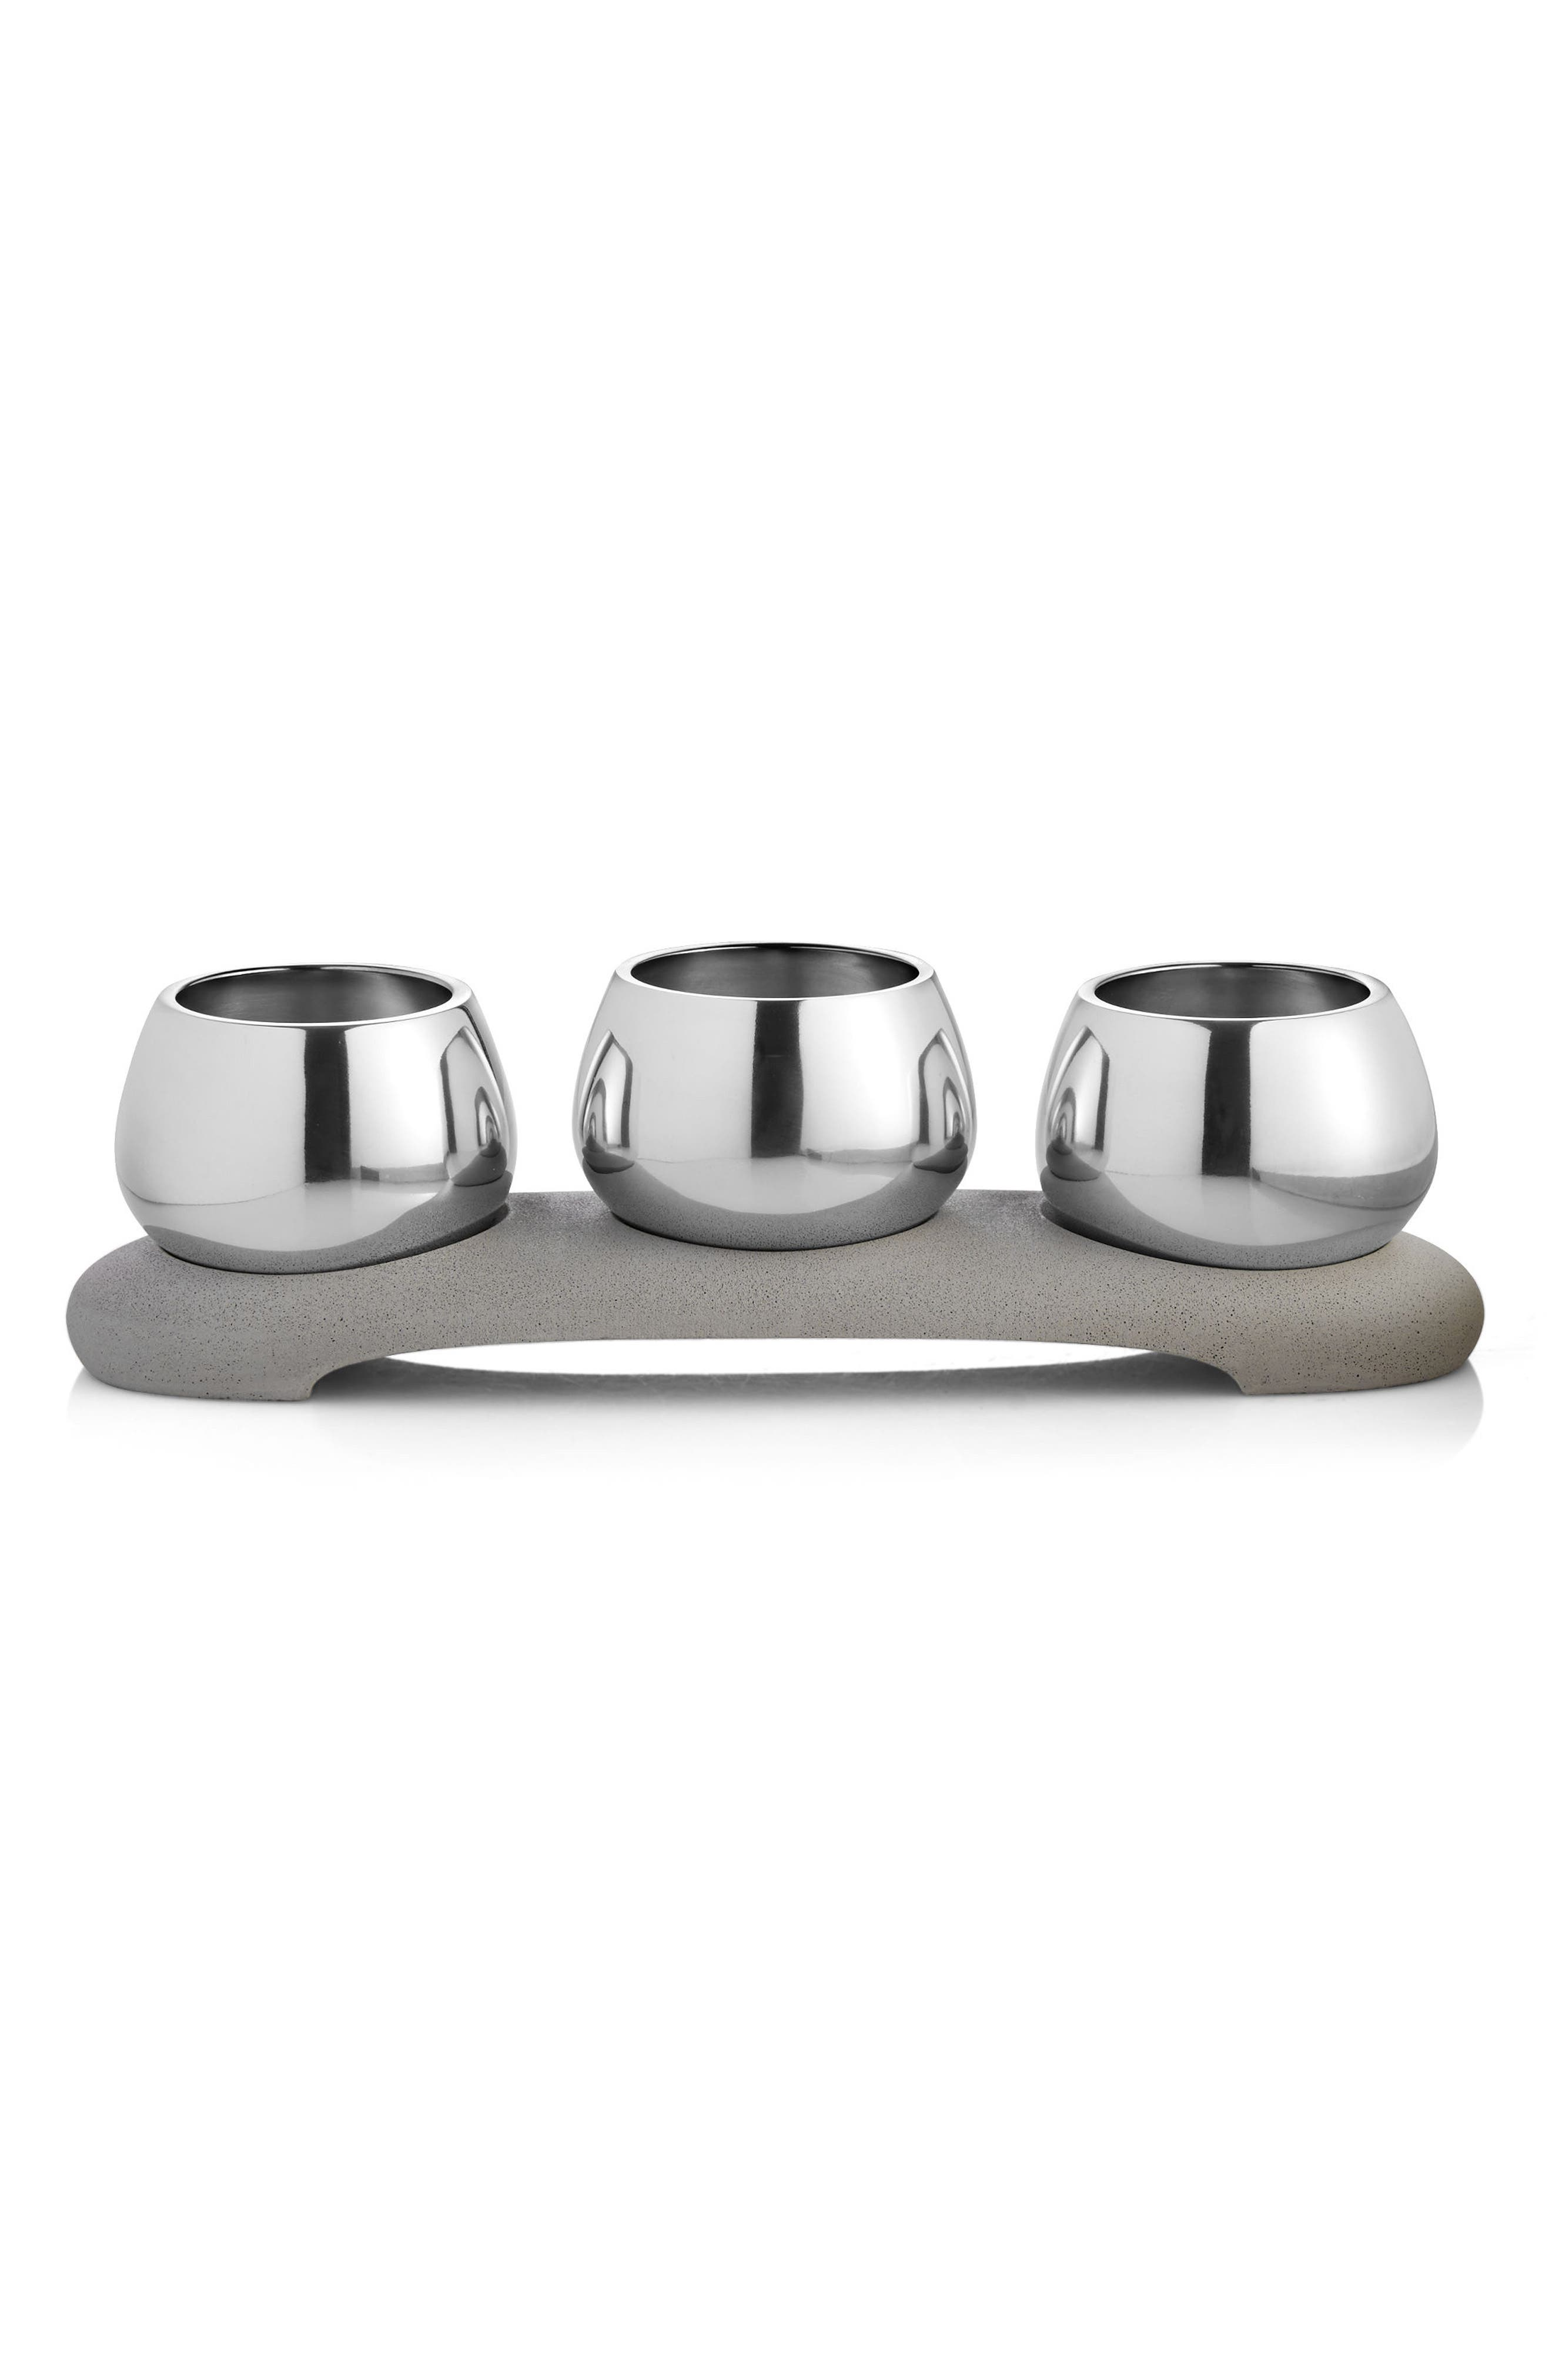 Forte 4-Piece Condiment Serving Set,                             Main thumbnail 1, color,                             020